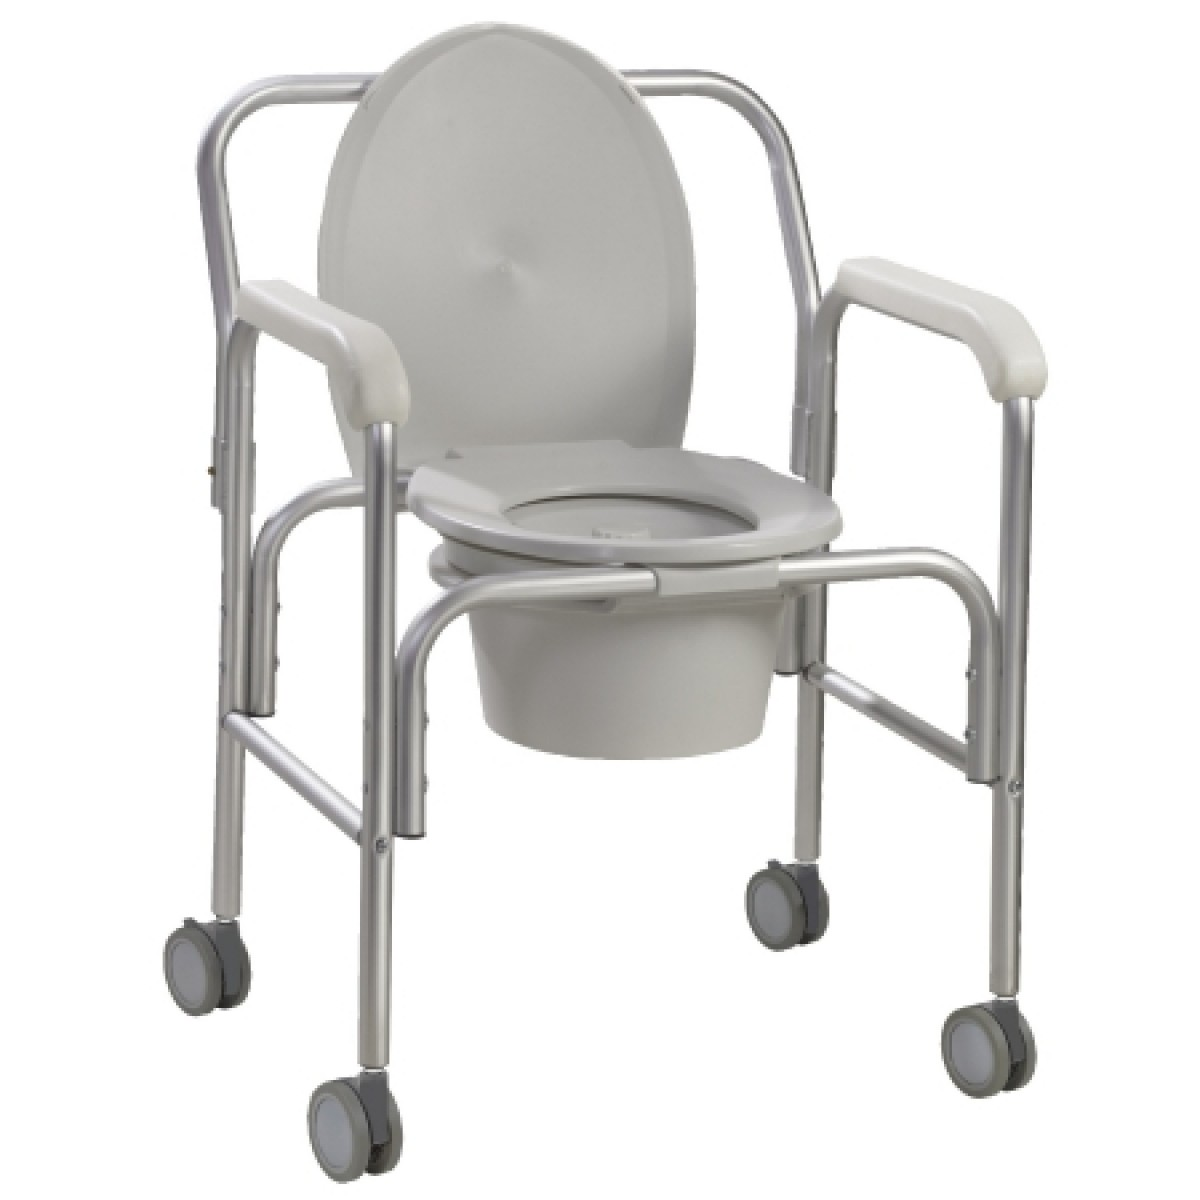 Commodes at Lowes | Lowes Toilet | Sinks at Lowes